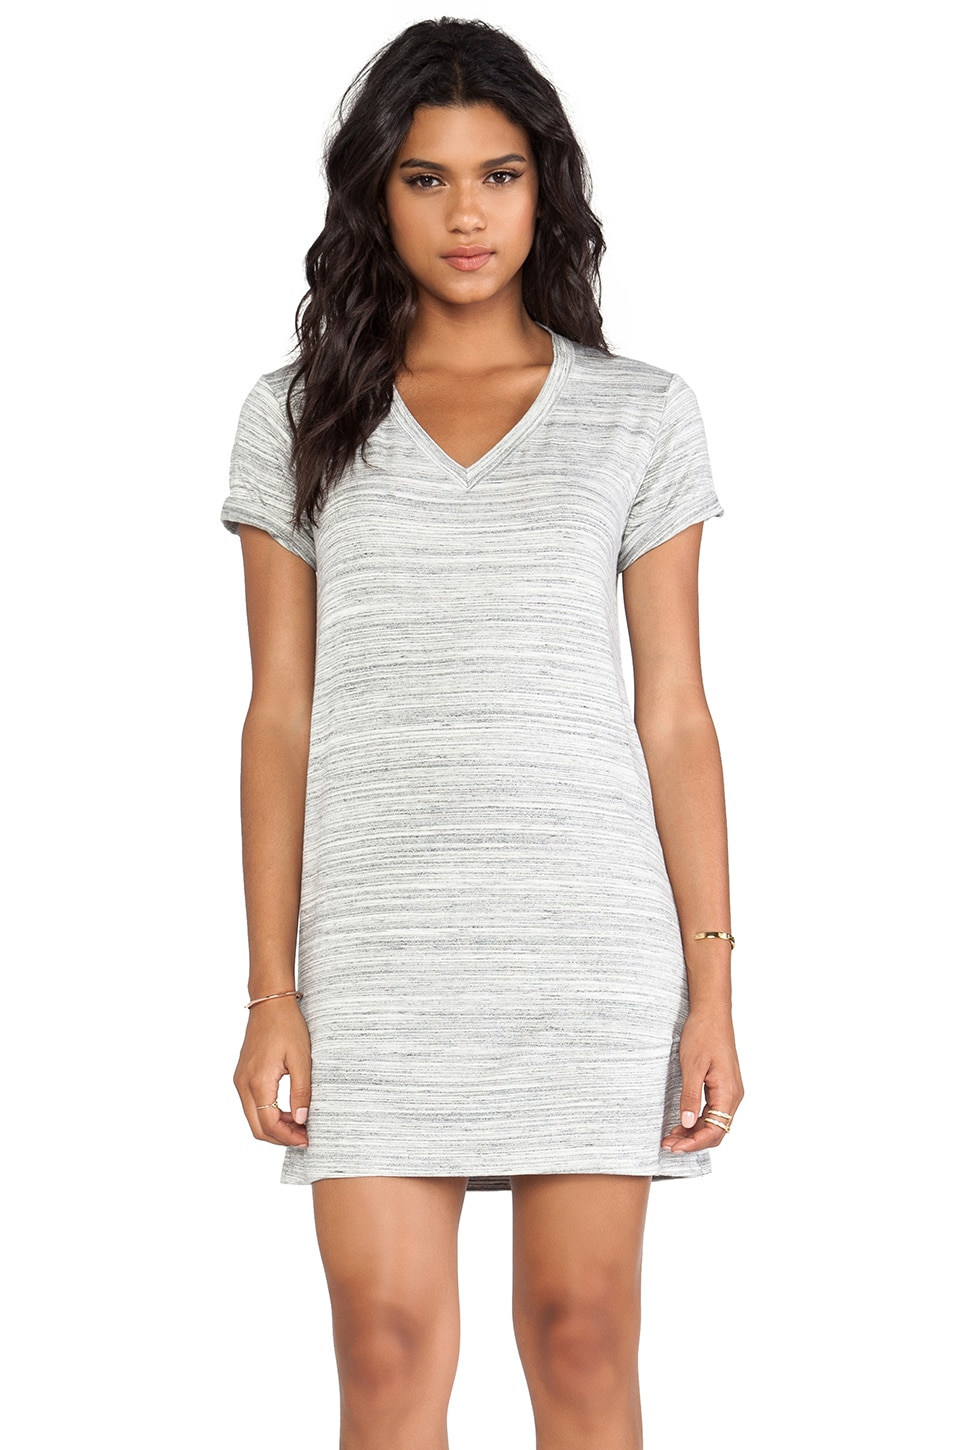 dolan V-Neck T-Shirt Dress in Marble